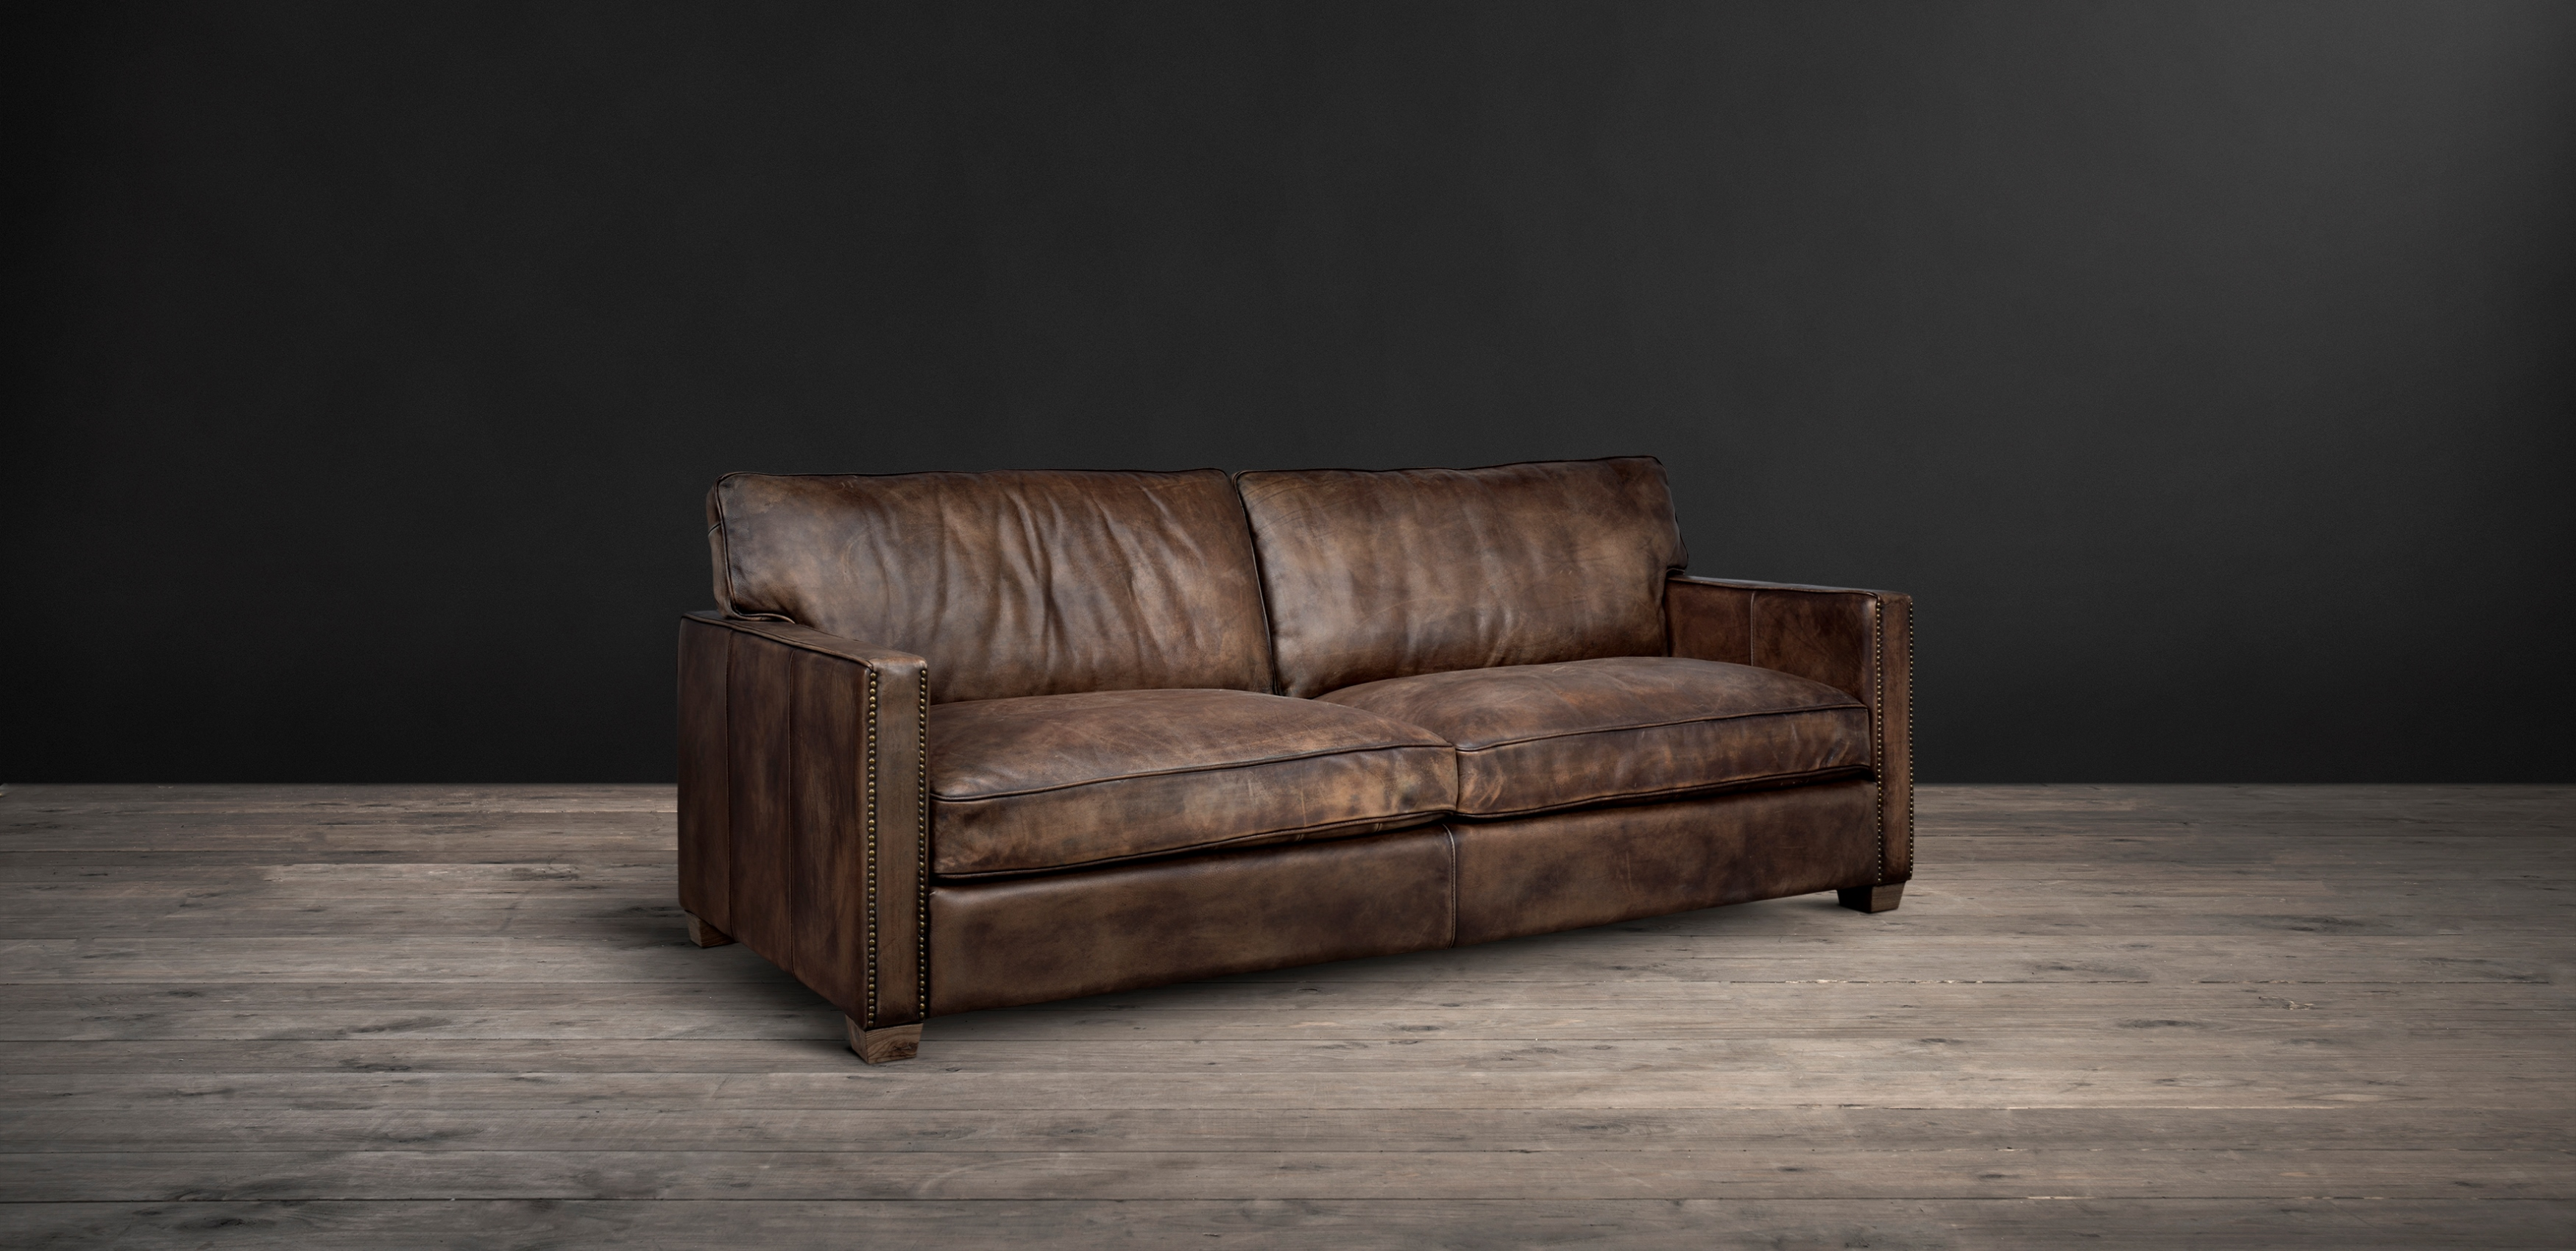 Timothy Oulton Classic Leather Sofa - Viscount William Leather Sofa from side